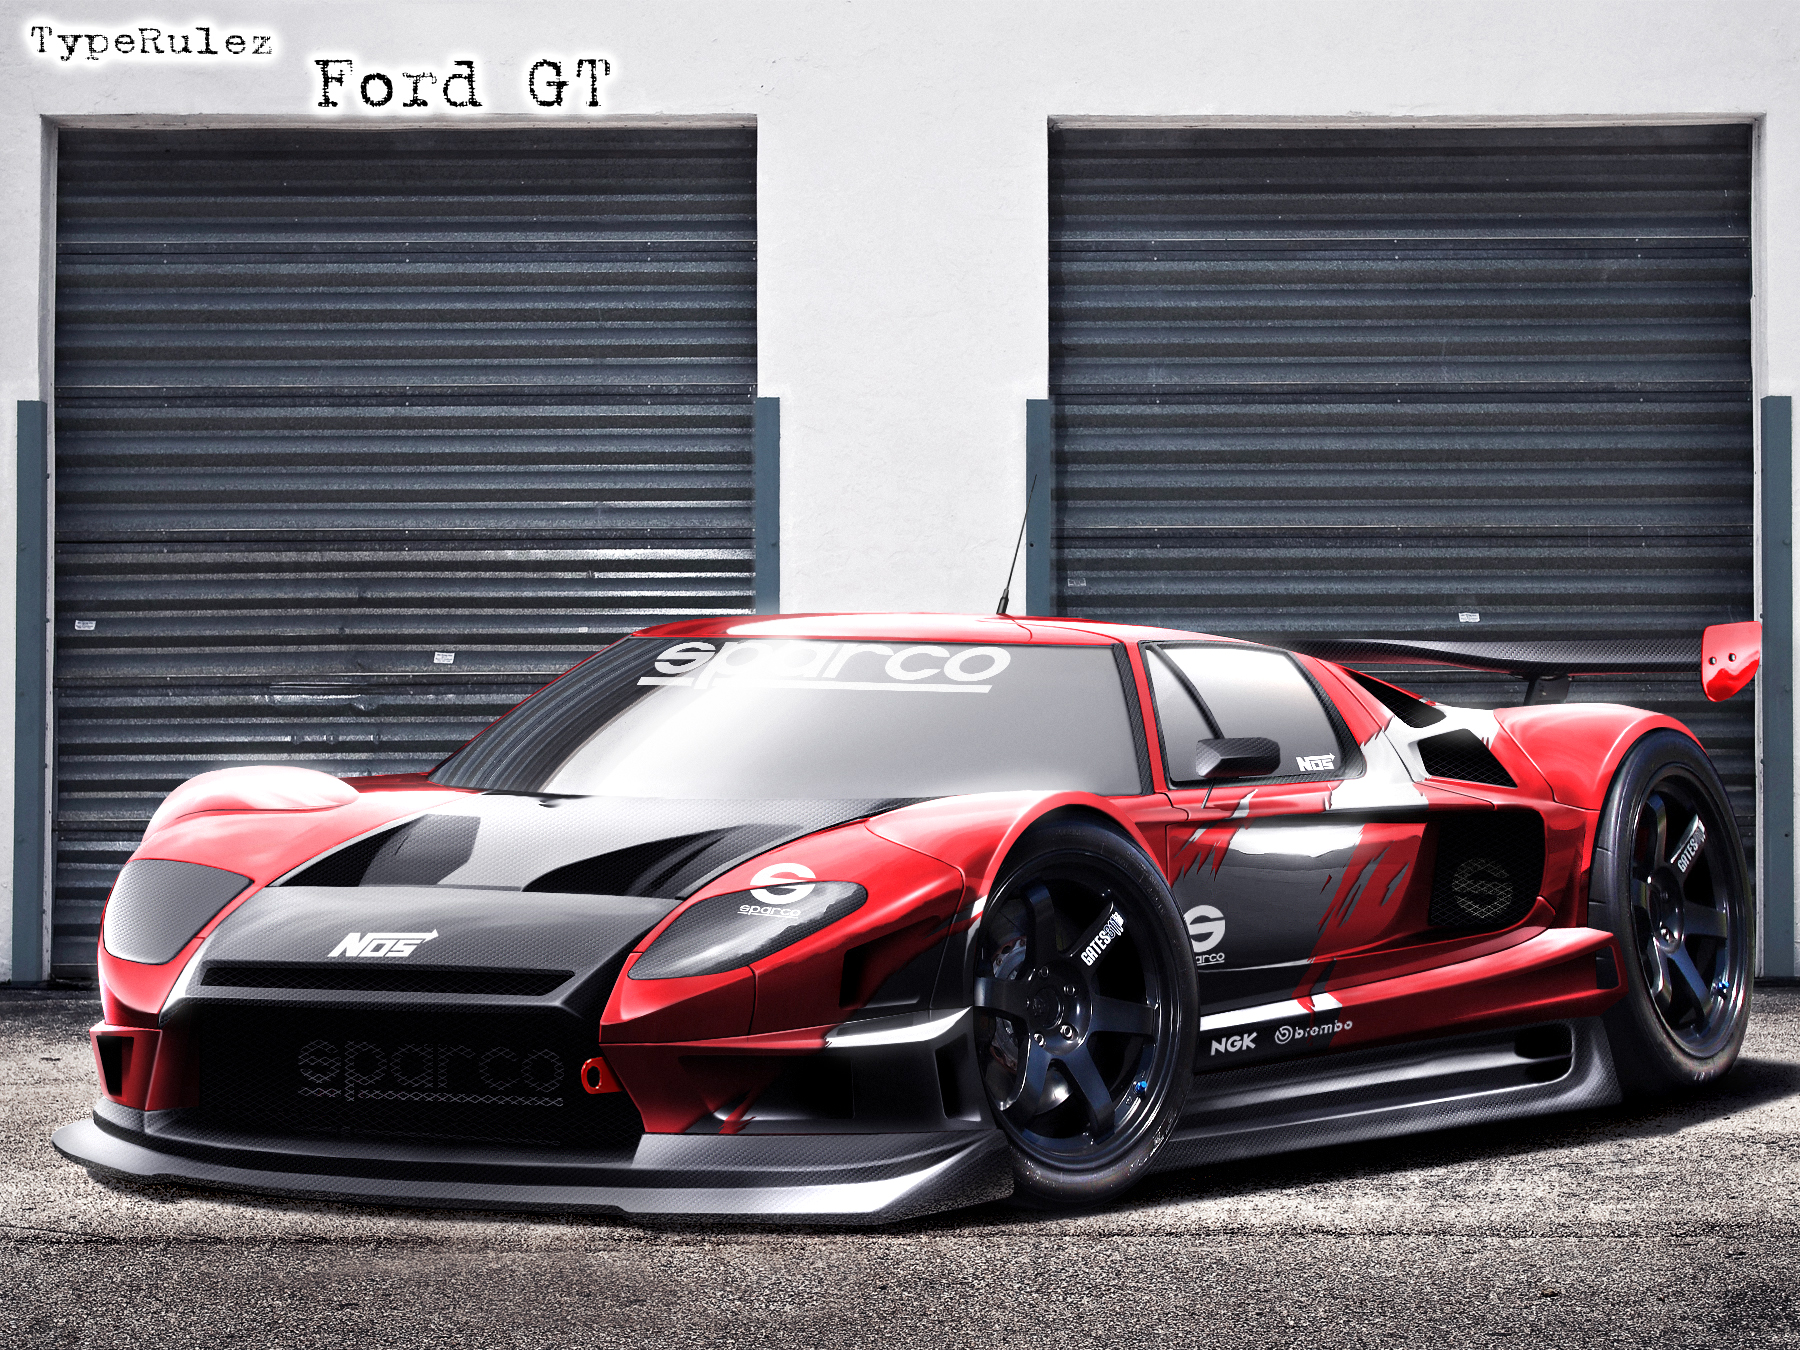 Free Download Ford Gt Track Hd Wallpaper Galerie Wallpapers For All